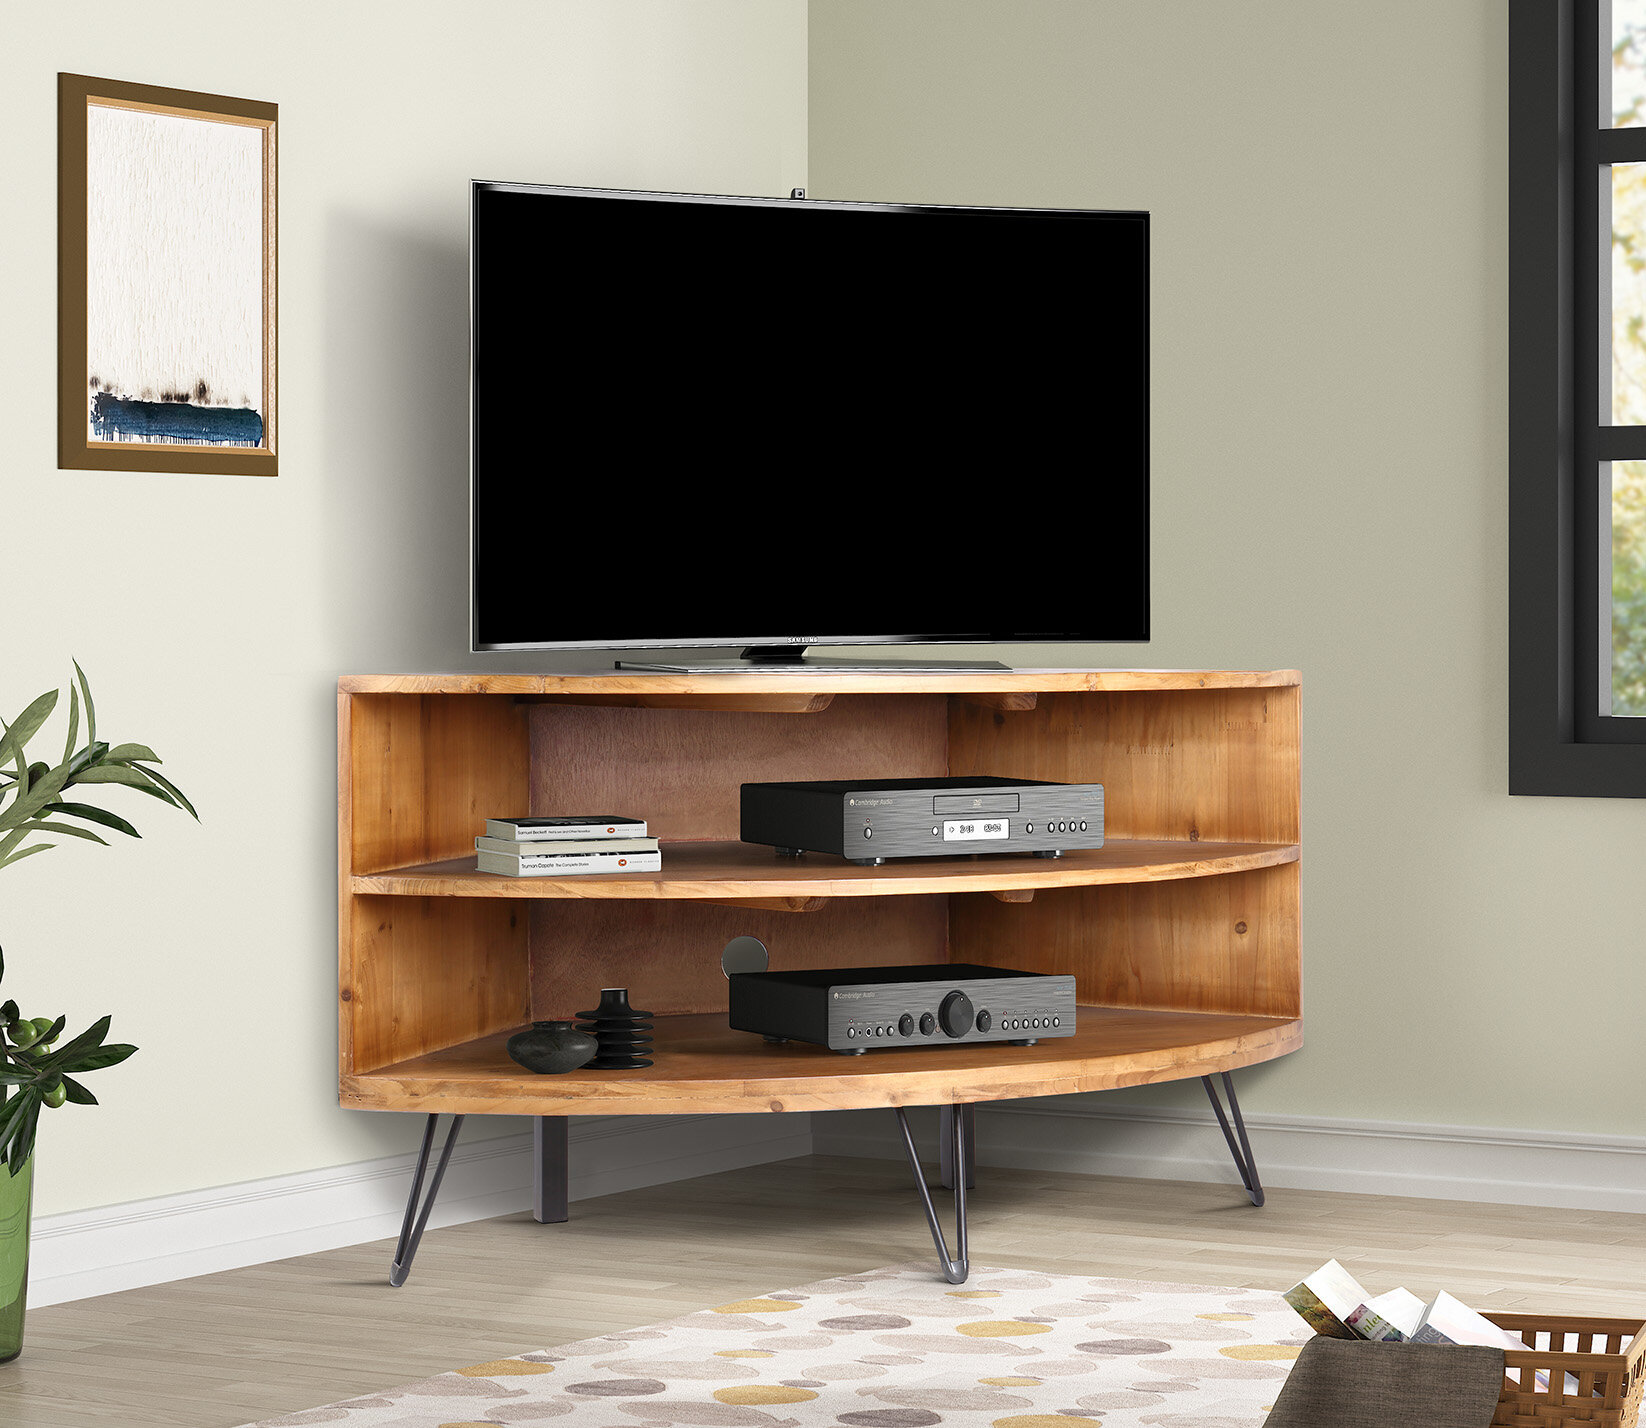 Lockheart Solid Wood Corner TV Stand for TVs up to 20